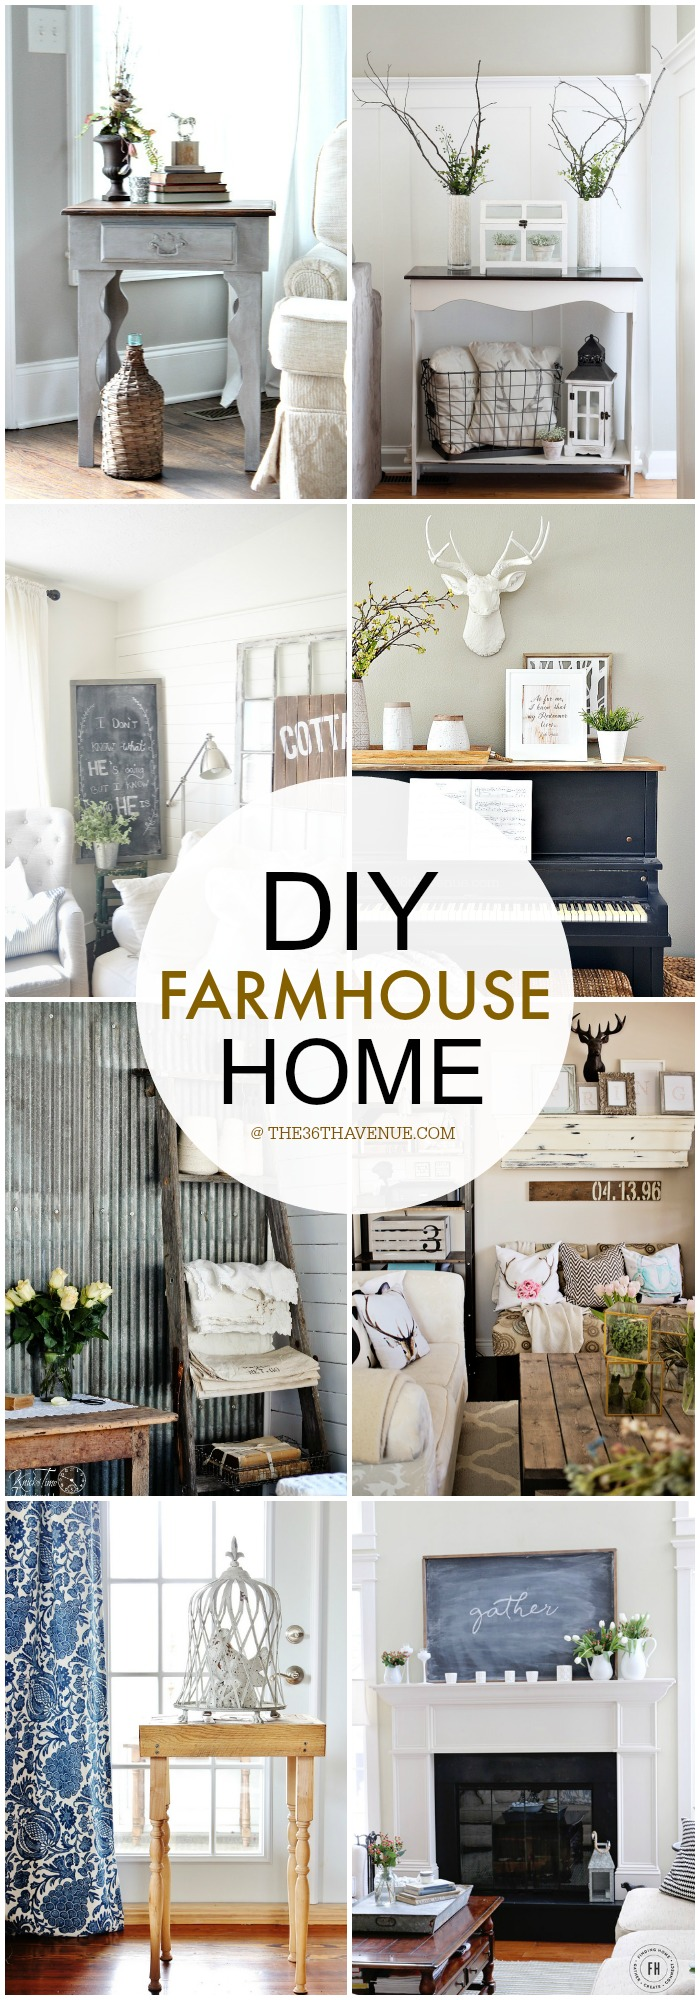 HOME DECOR DIY at the36thavenue.com #farmhouse